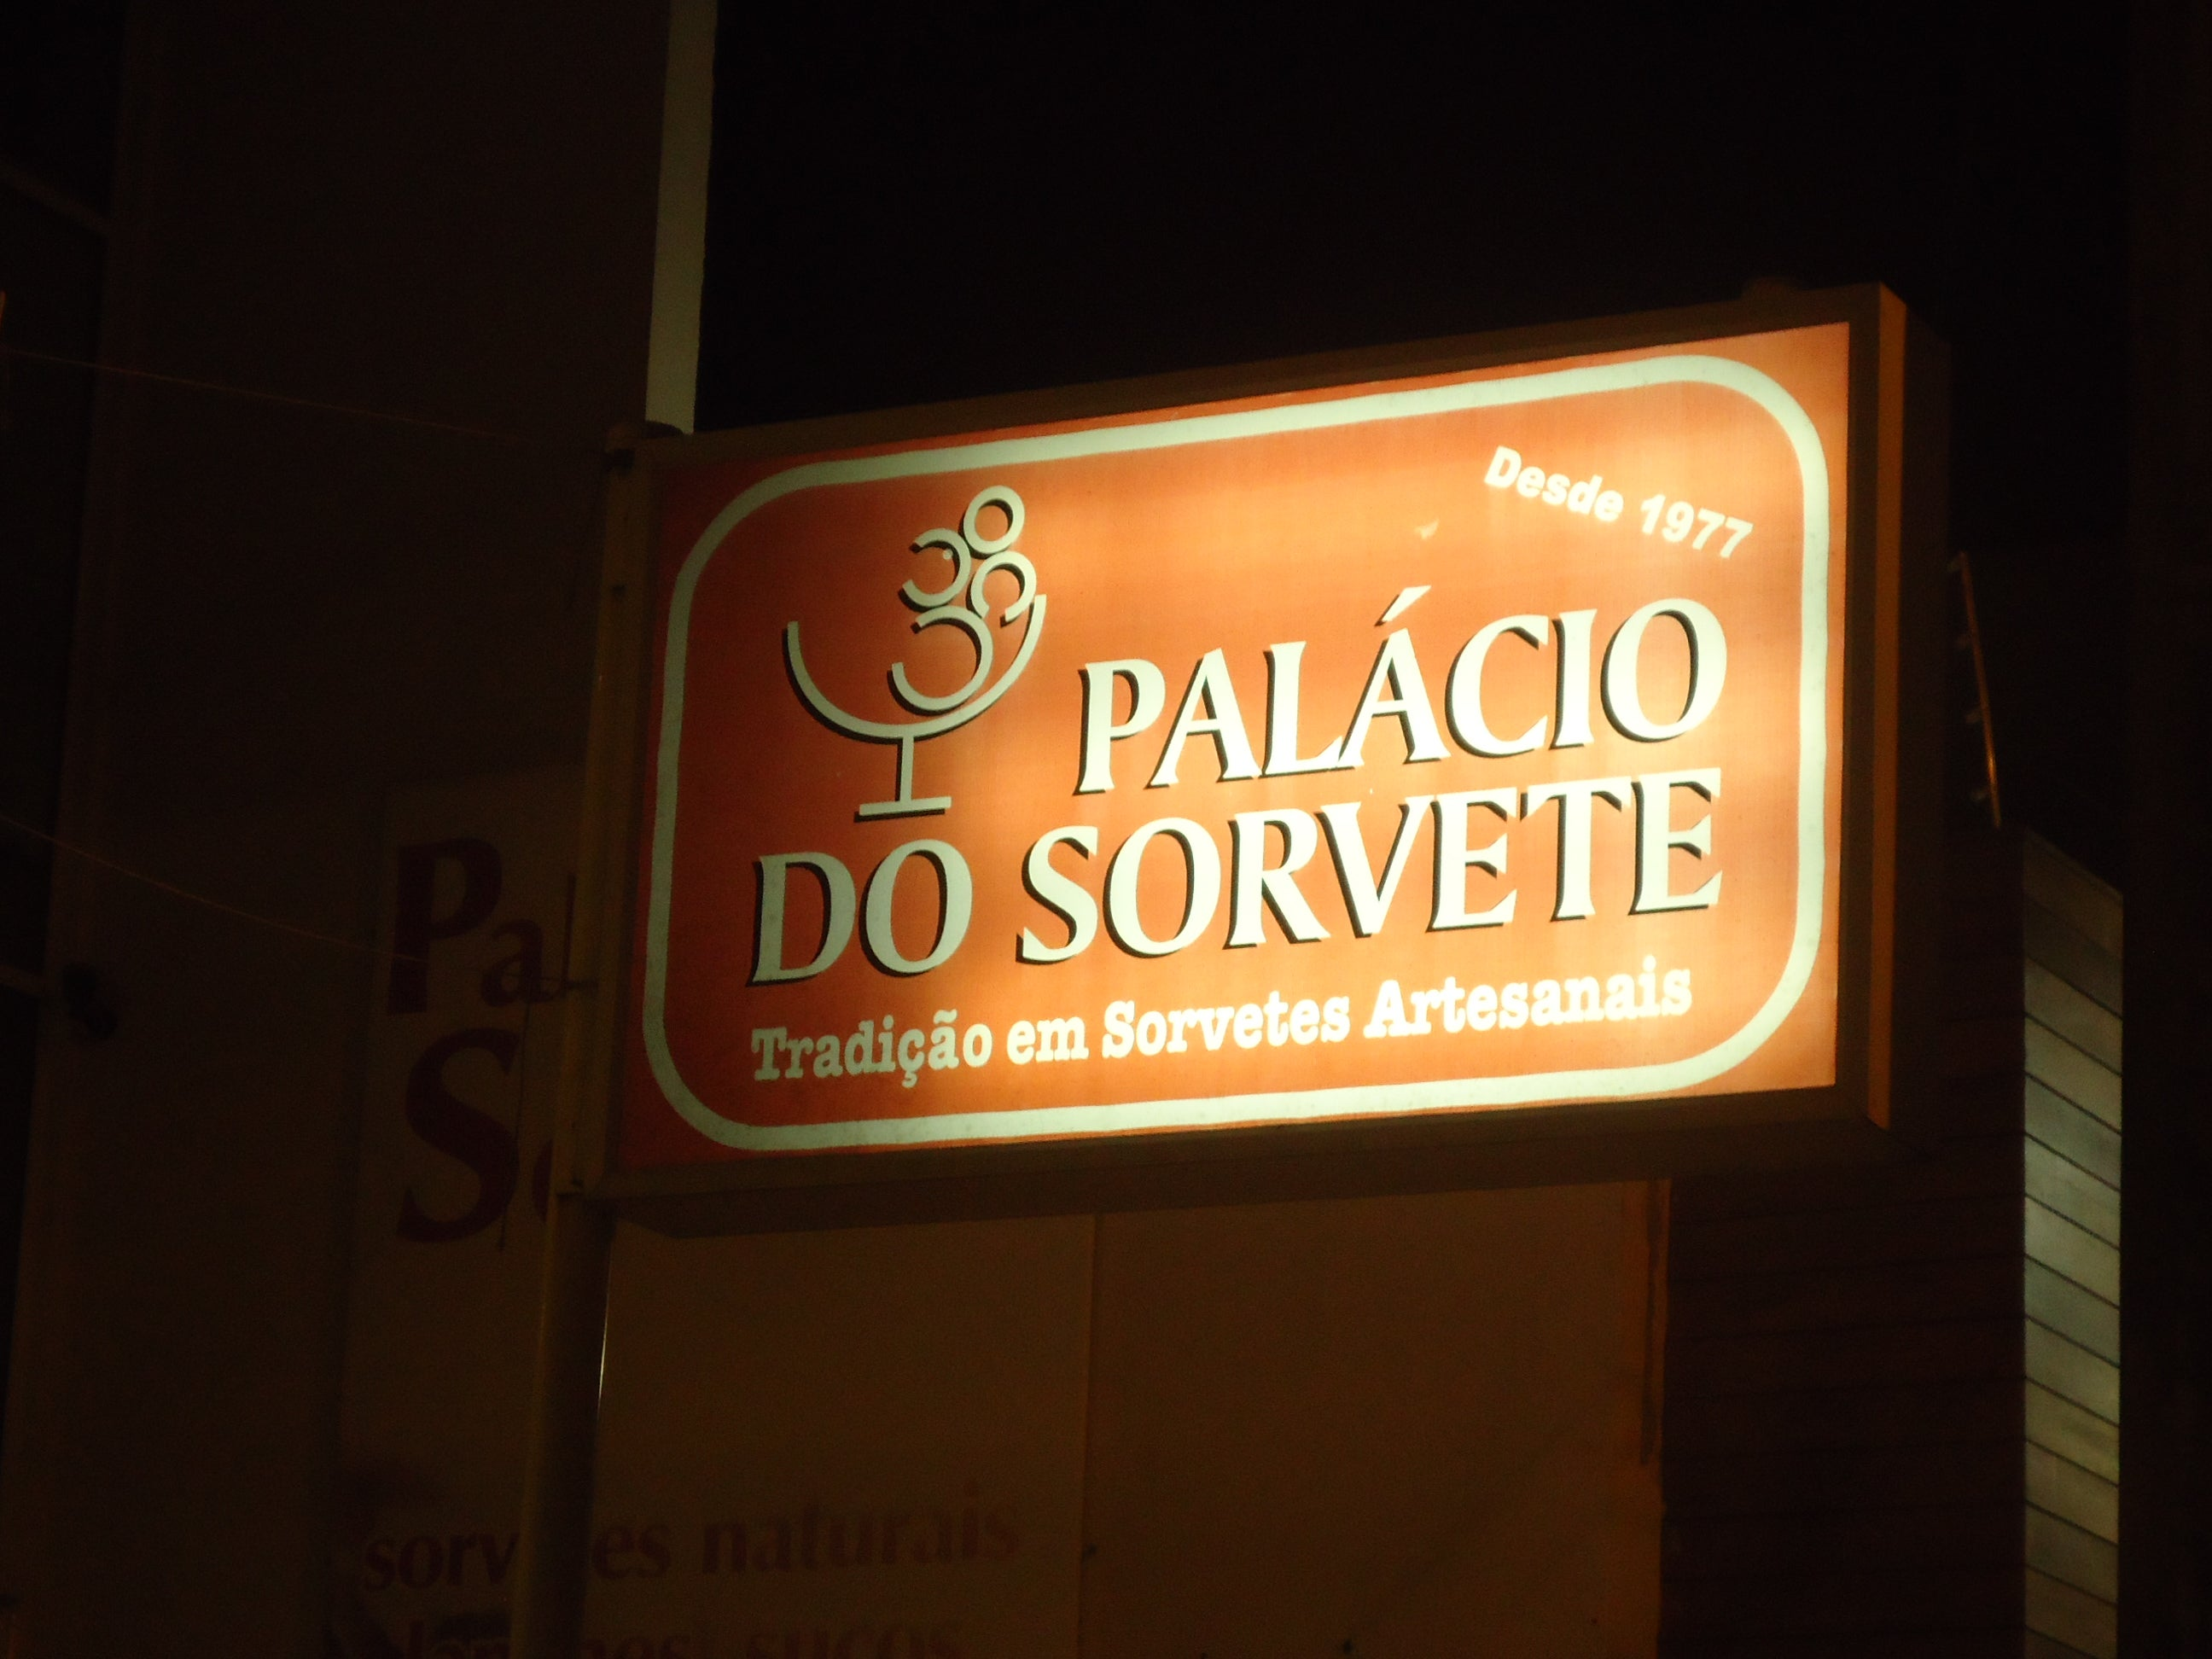 Heladería Palacio do Sorvete